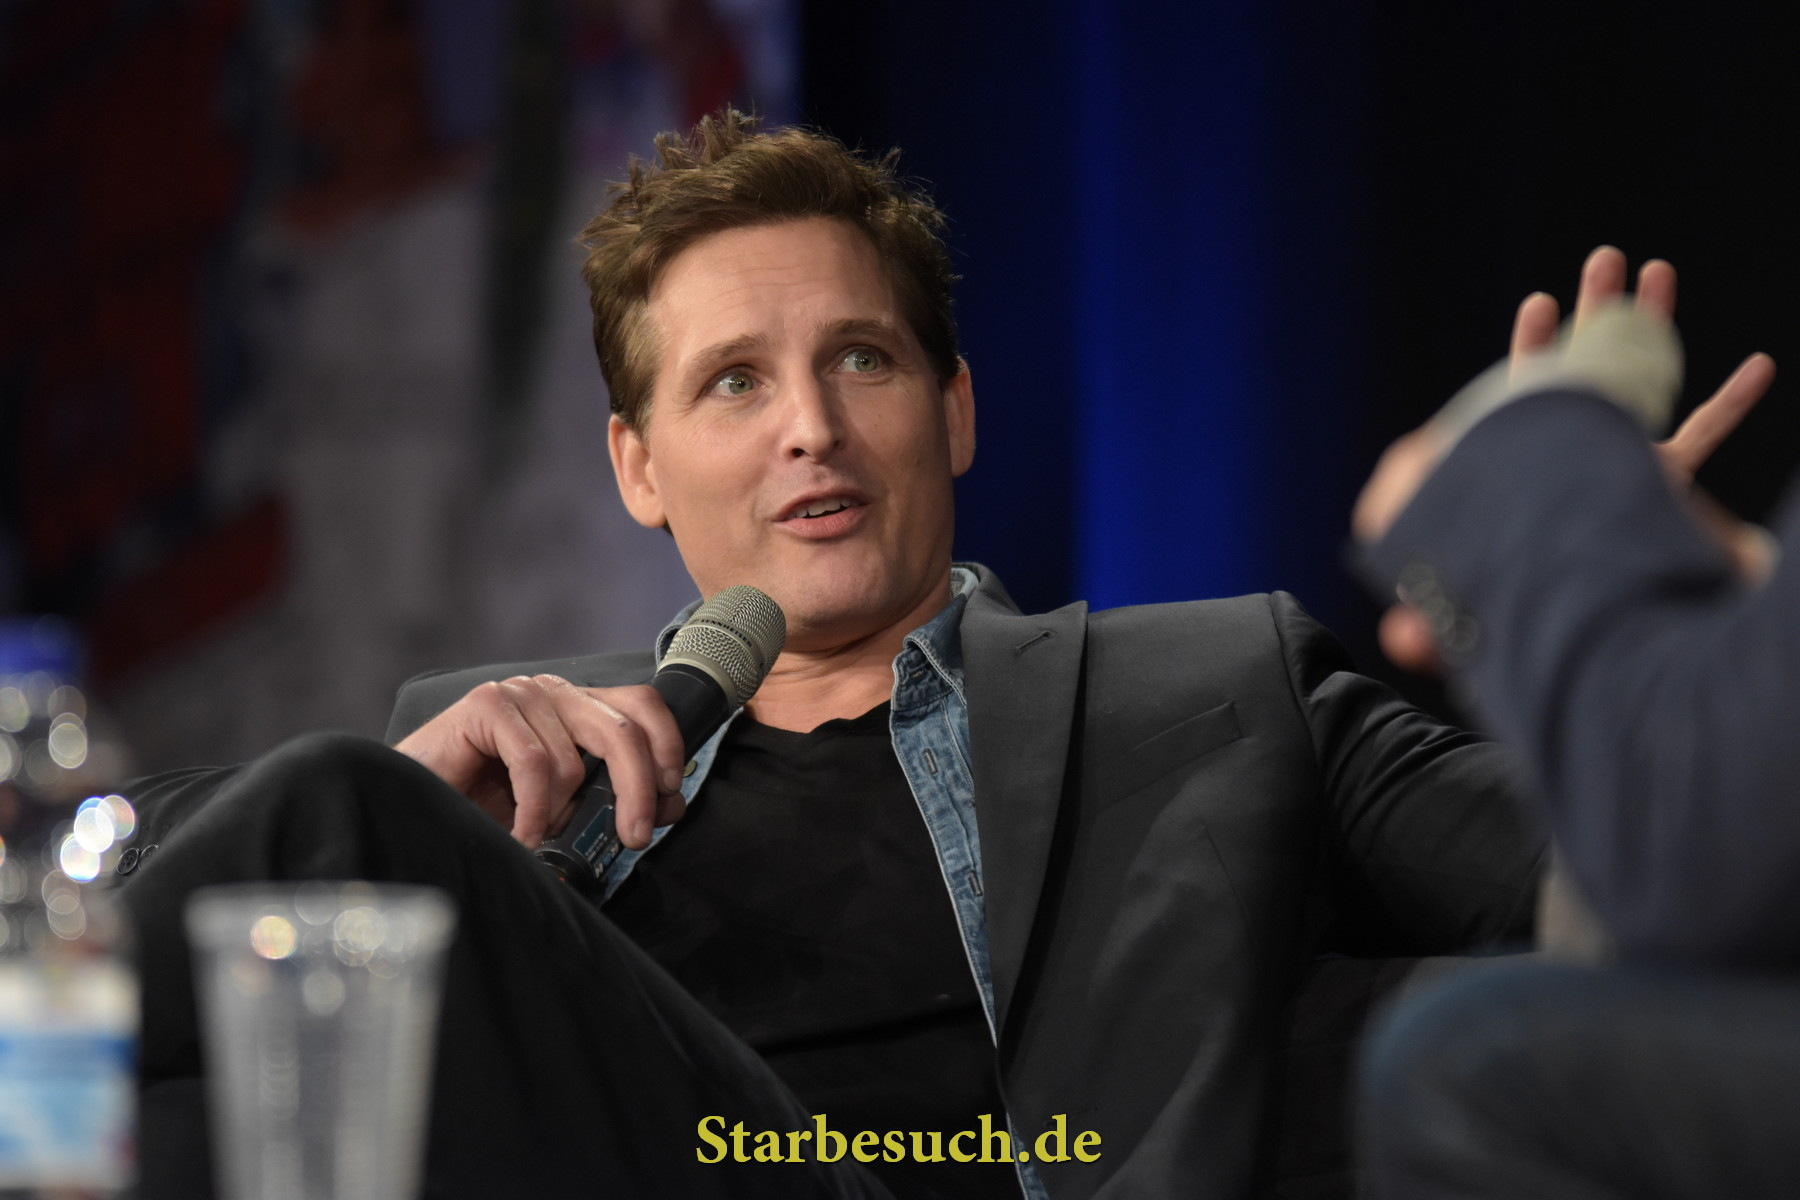 Dortmund, Germany - December 9th 2017: US Actor Peter Facinelli (Twilight Saga, Supergirl, American Odyssey, Glee) at German Comic Con Dortmund. More than 30 celebrities attended the event to meet their fans, sign autographs and do photoshoots